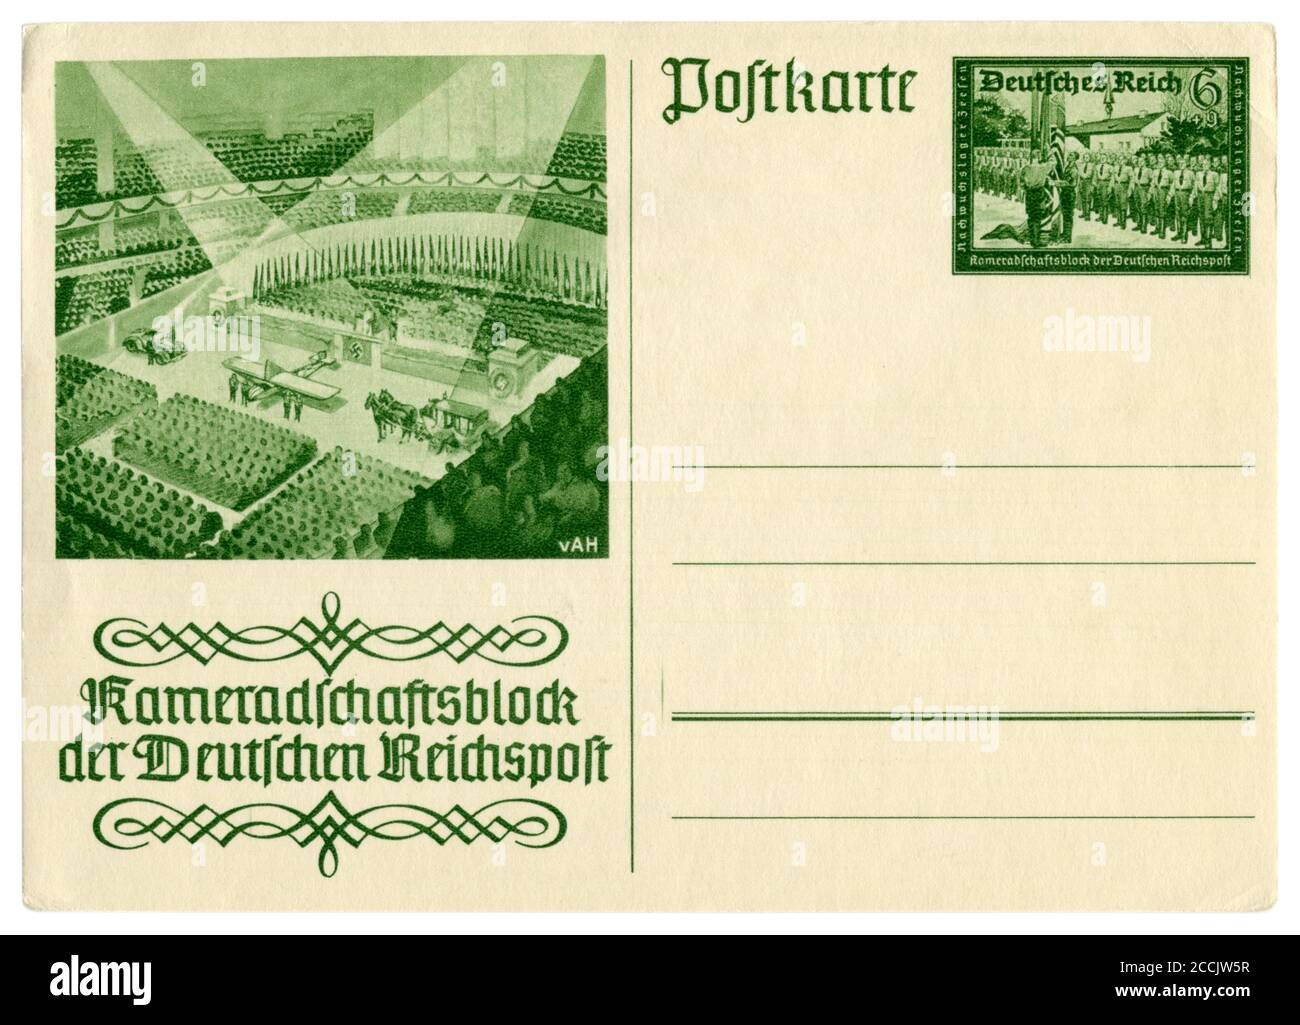 German historical postal card: Comradeship block of the German Reichspost, Meeting of postal service employees in the exhibition hall in Berlin, 1939 Stock Photo